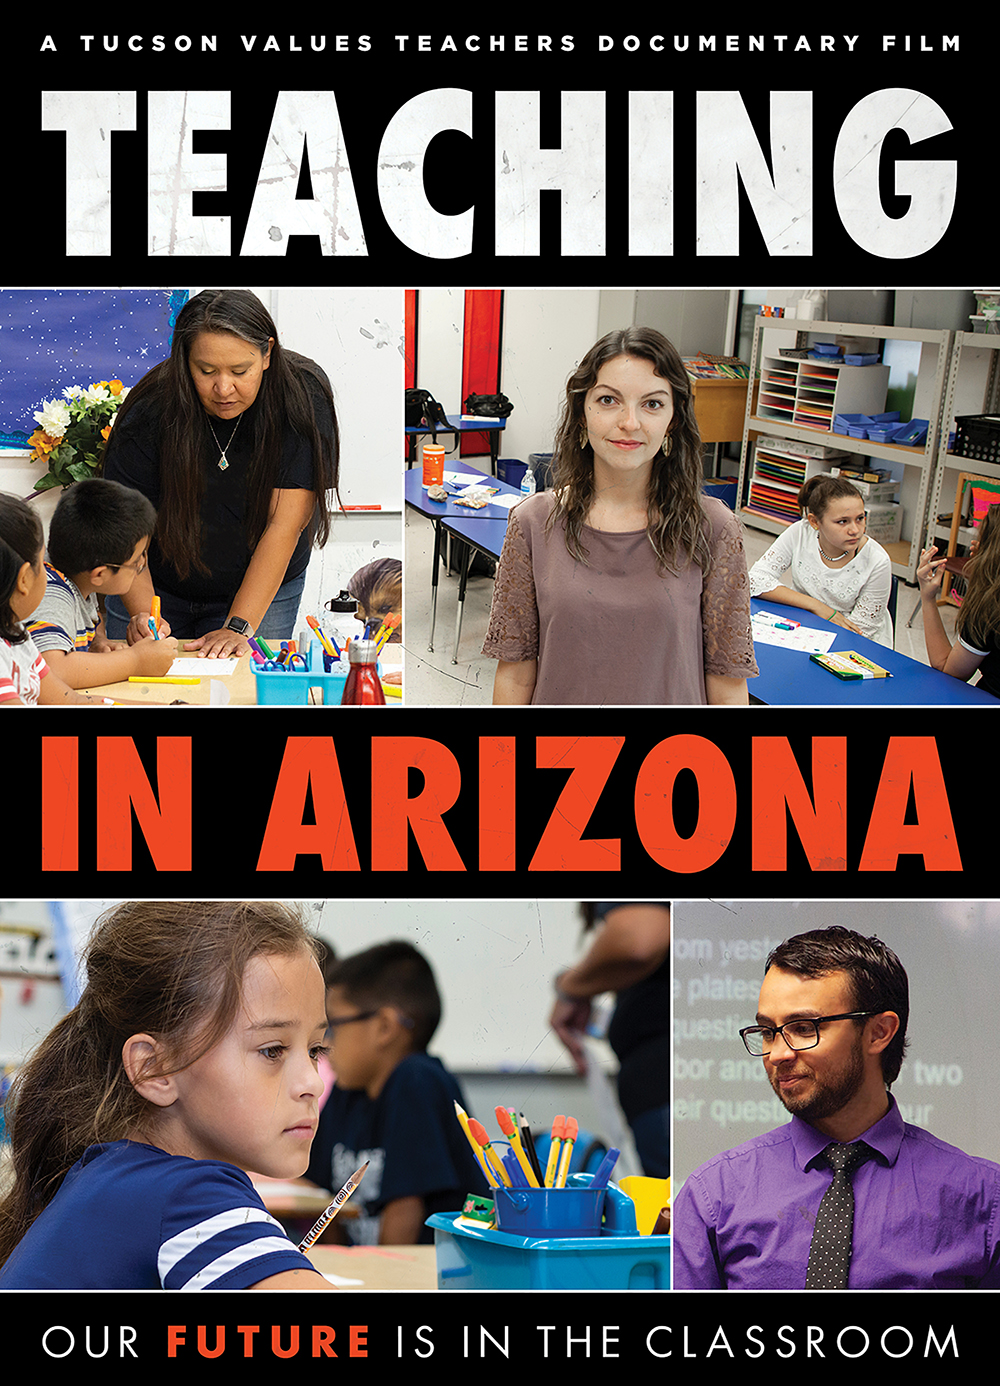 Teaching In Arizona Documentary Free To The Public Online Through May 12